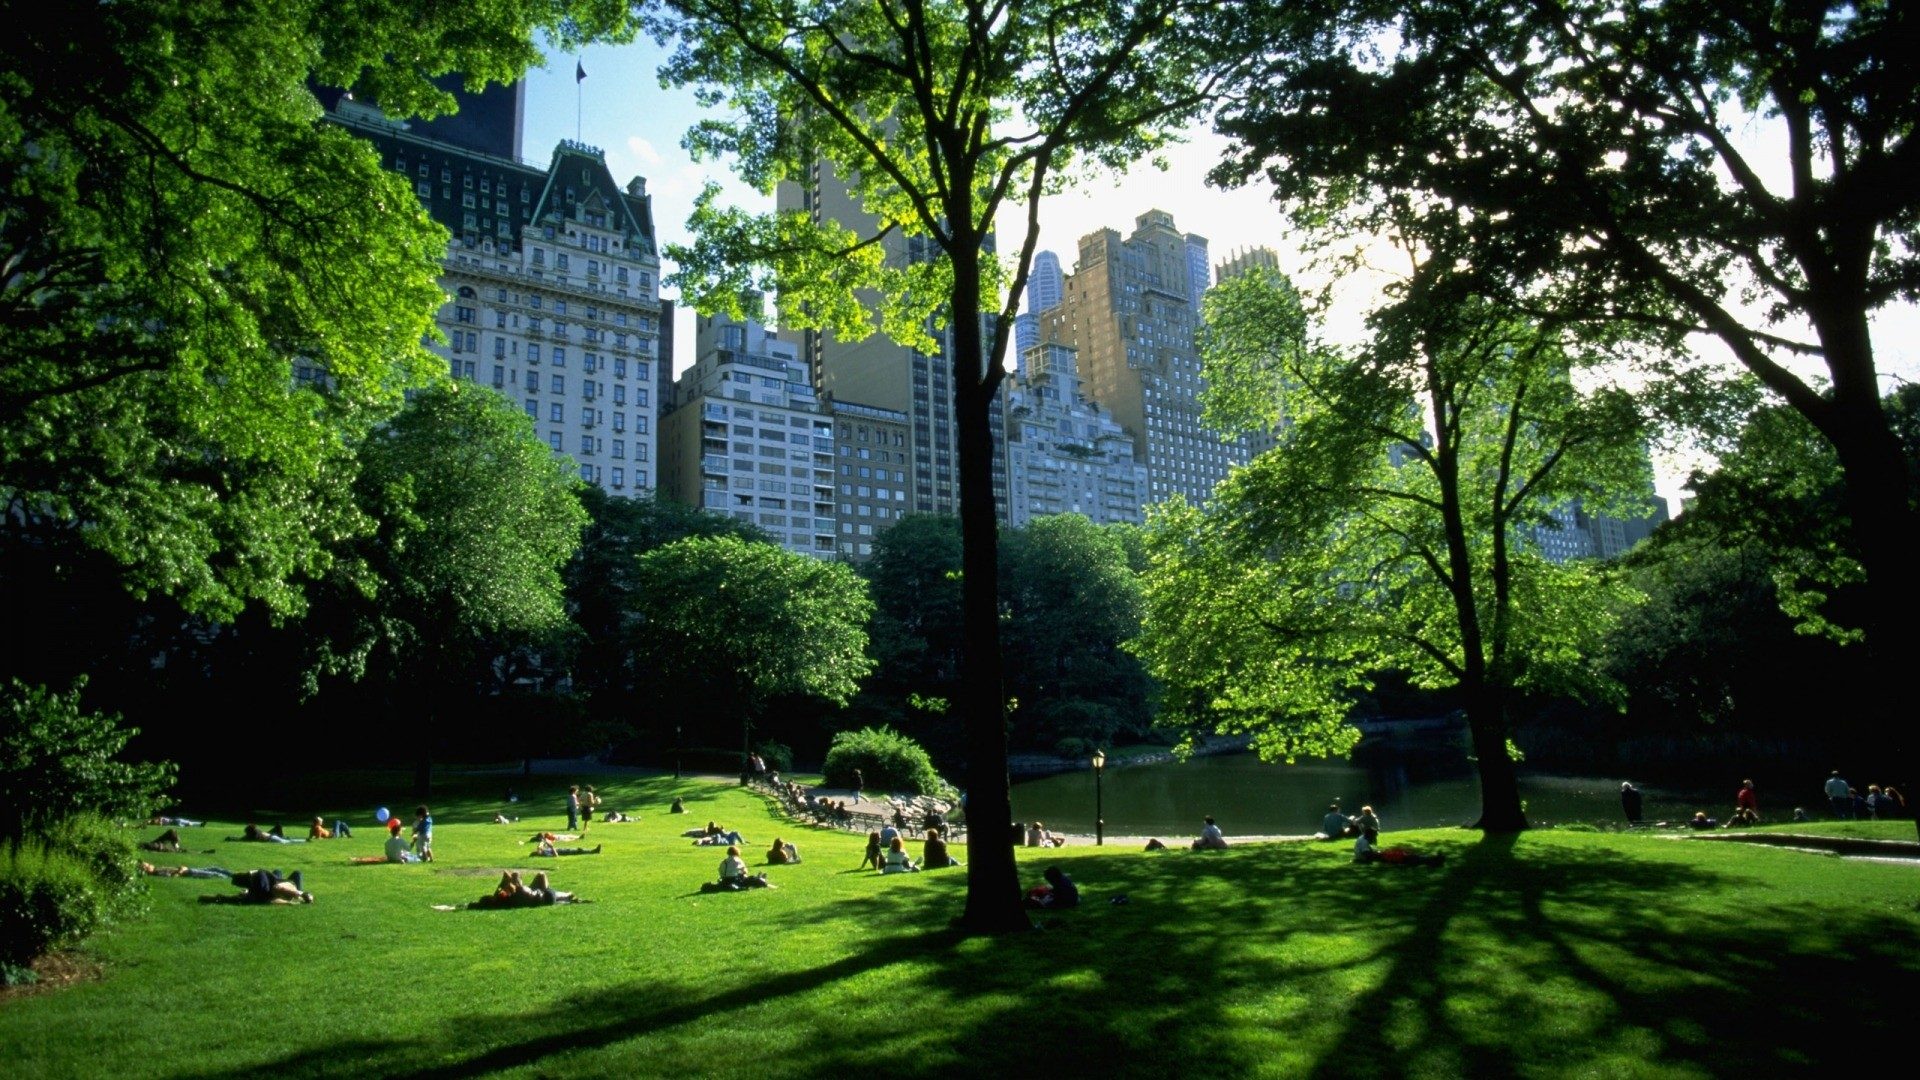 1920x1080 ... central-park-wallpaper-new-york-central-park-hd-wallpaper -desktop-xgurpvbs